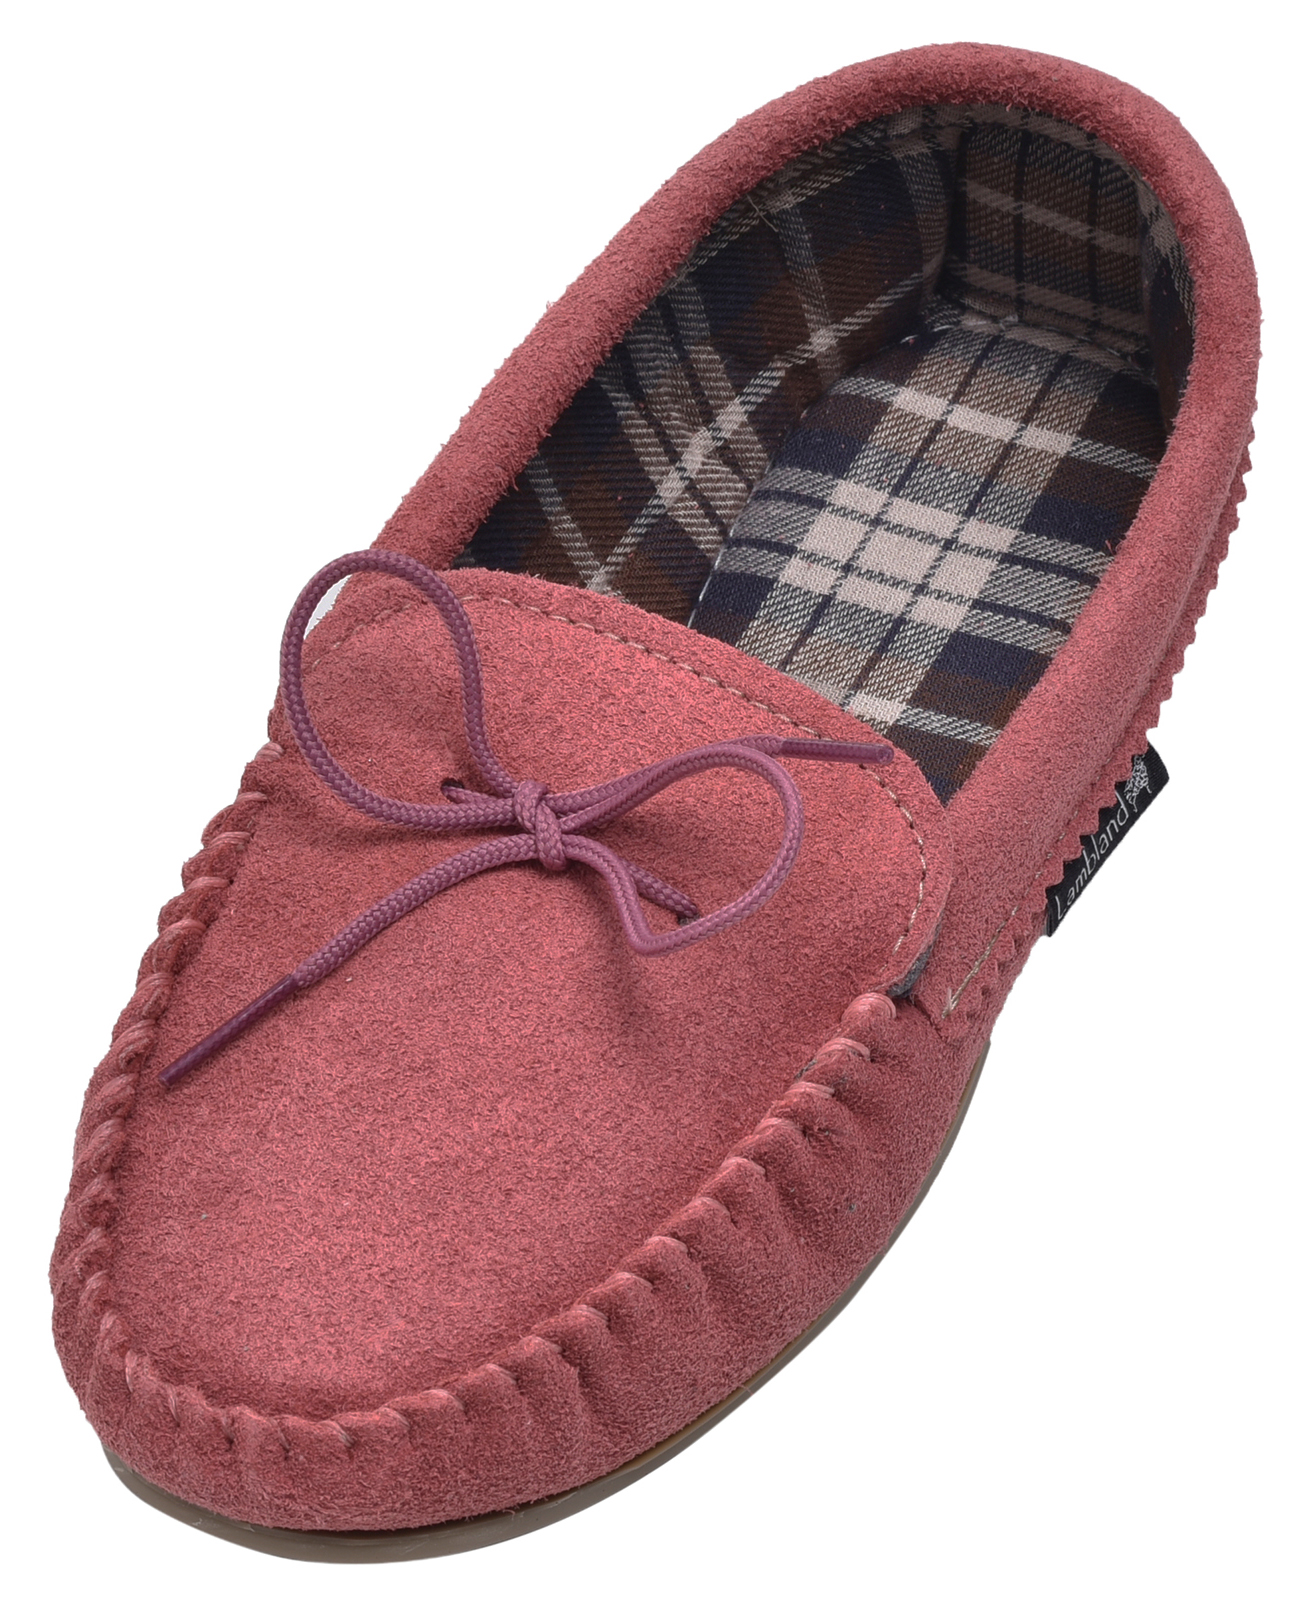 Lambland Ladies Genuine Suede Moccasin Slippers Fabric Lined Hard Sole - Pink